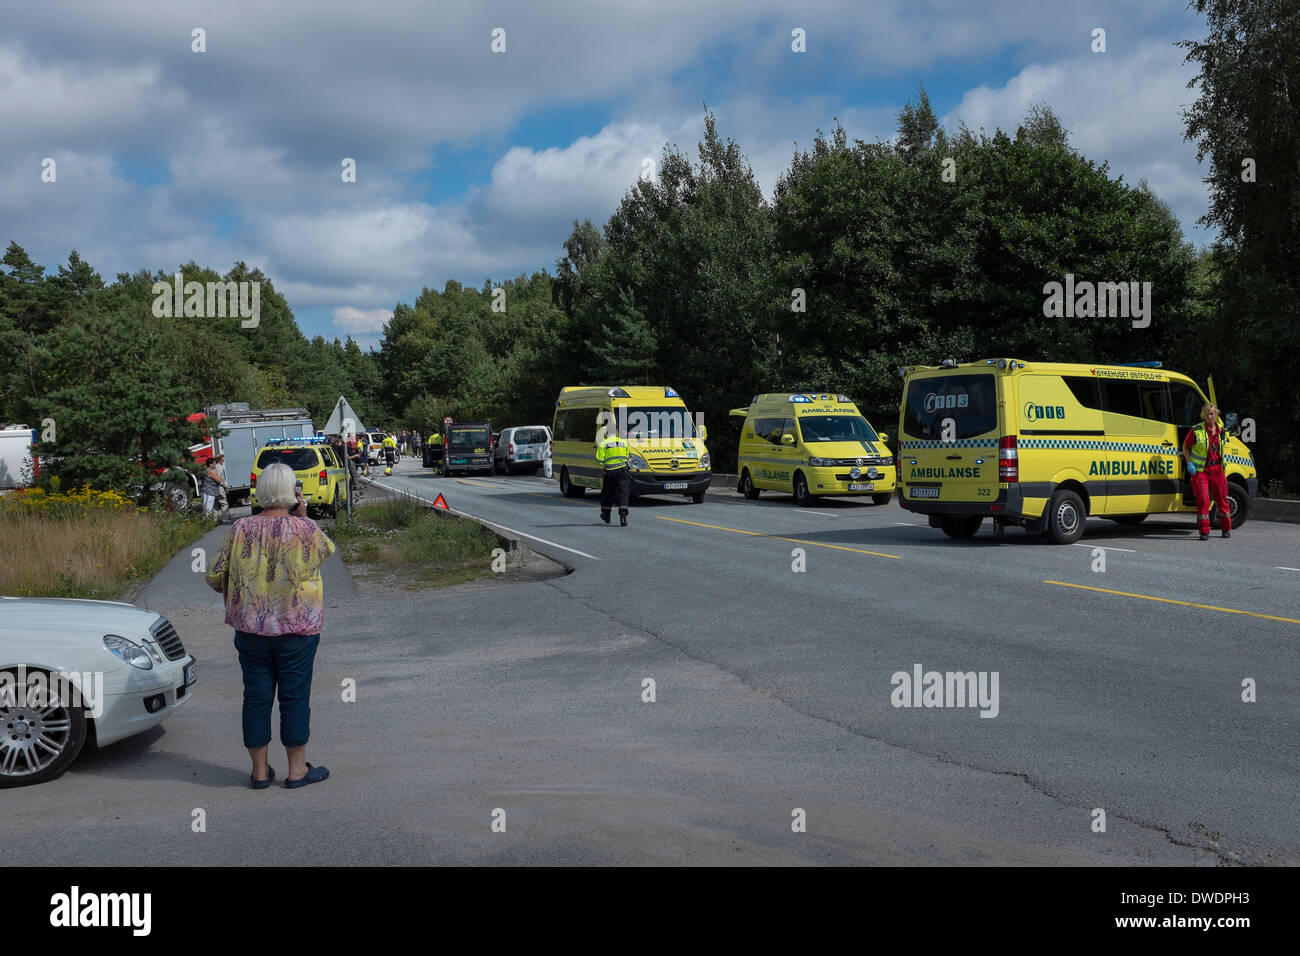 Minutes after the ambulance crew have arrived at a road accident scene in Norway. - Stock Image